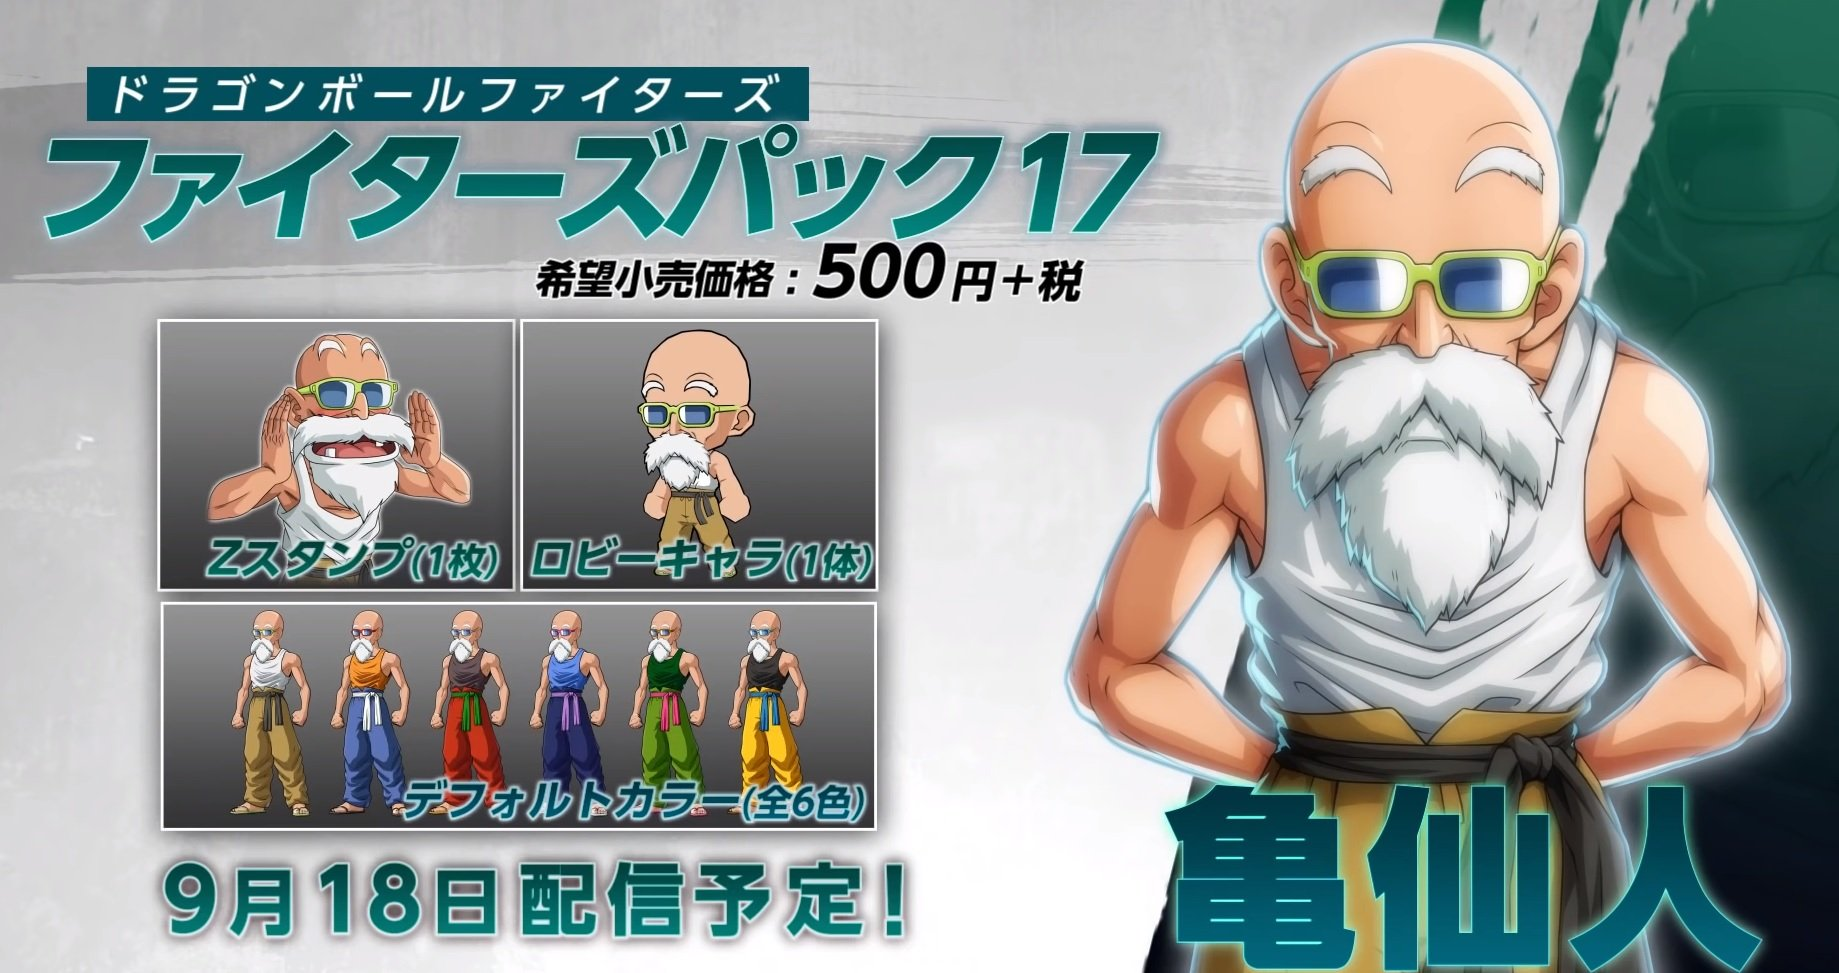 https://www.destructoid.com/stories/../ul/603457-here-s-a-more-detailed-look-at-dragon-ball-fighterz-s-master-roshi-dlc/DBZMasterRoshiCosmeticsOutfits.jpg